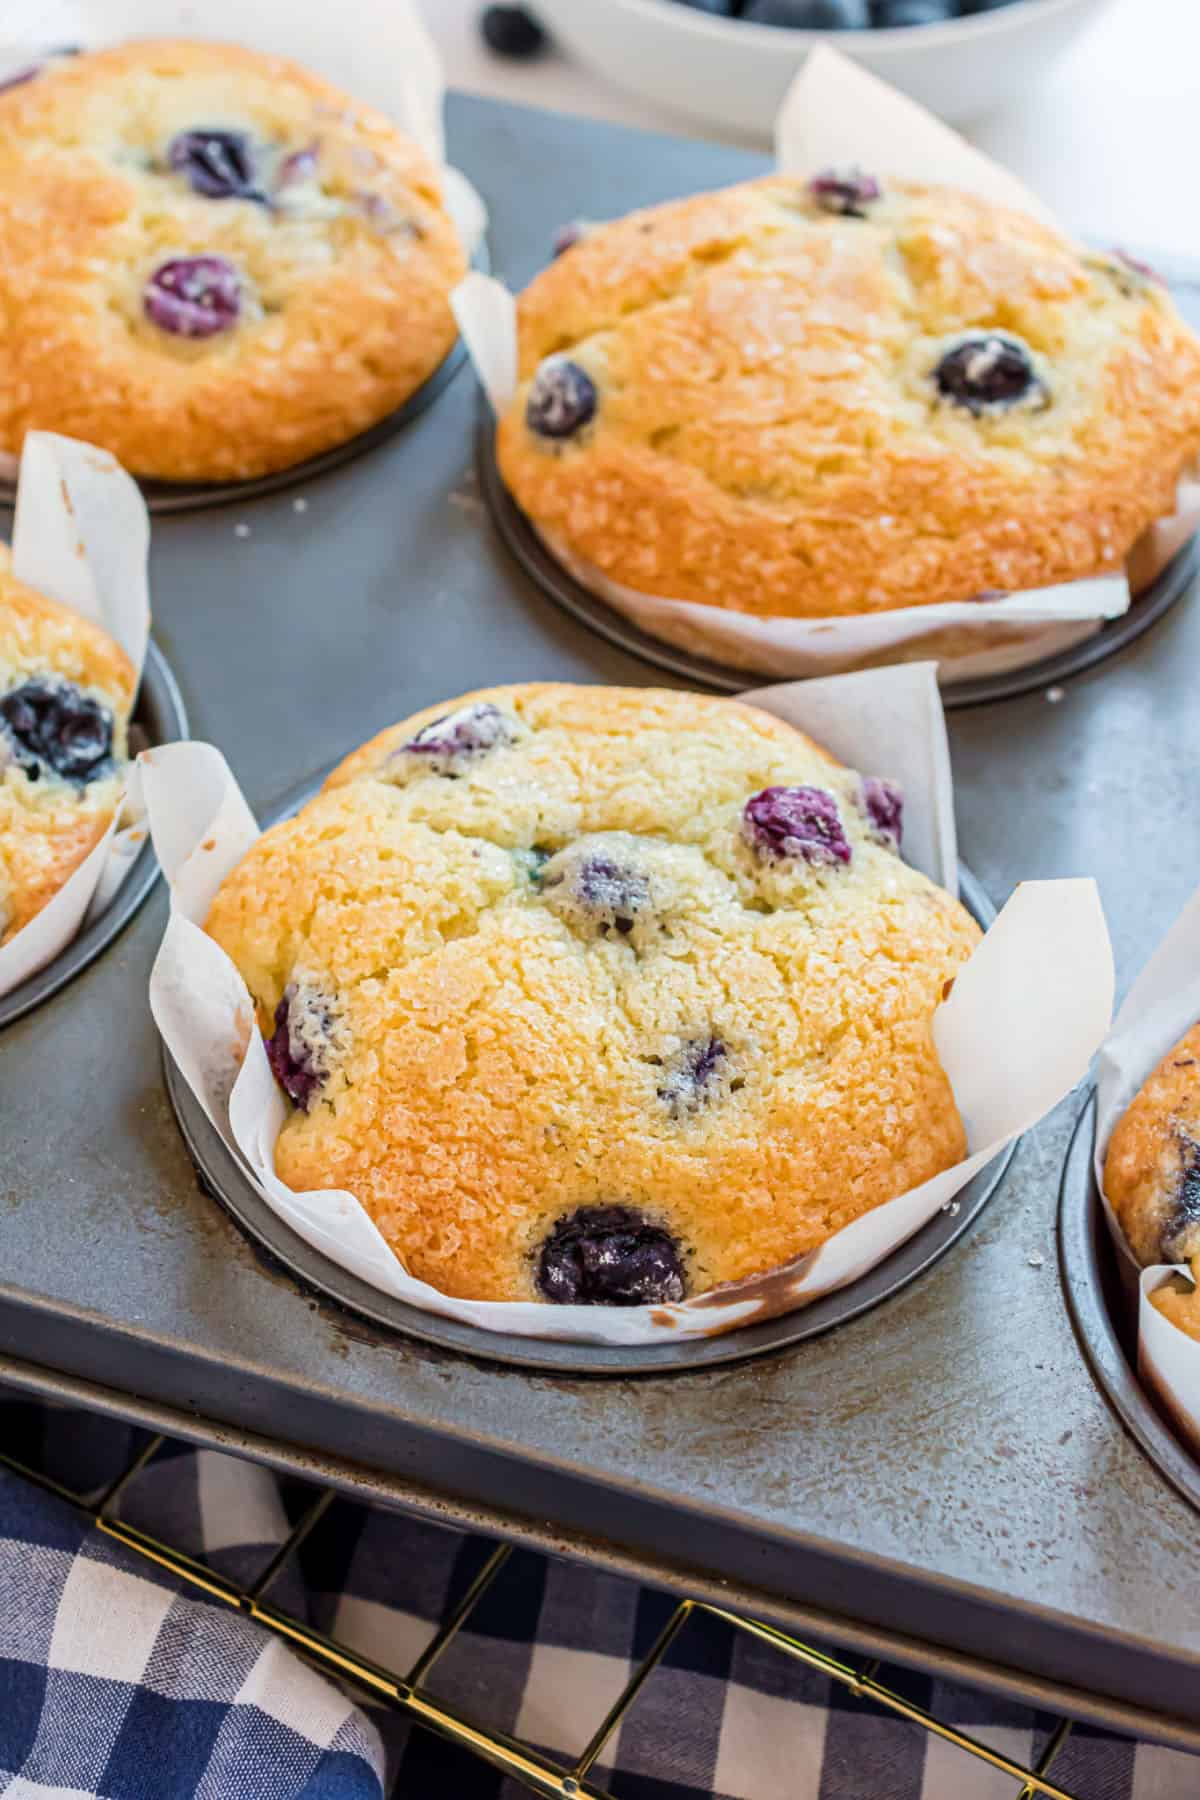 Blueberry muffins in muffins pan after baking.